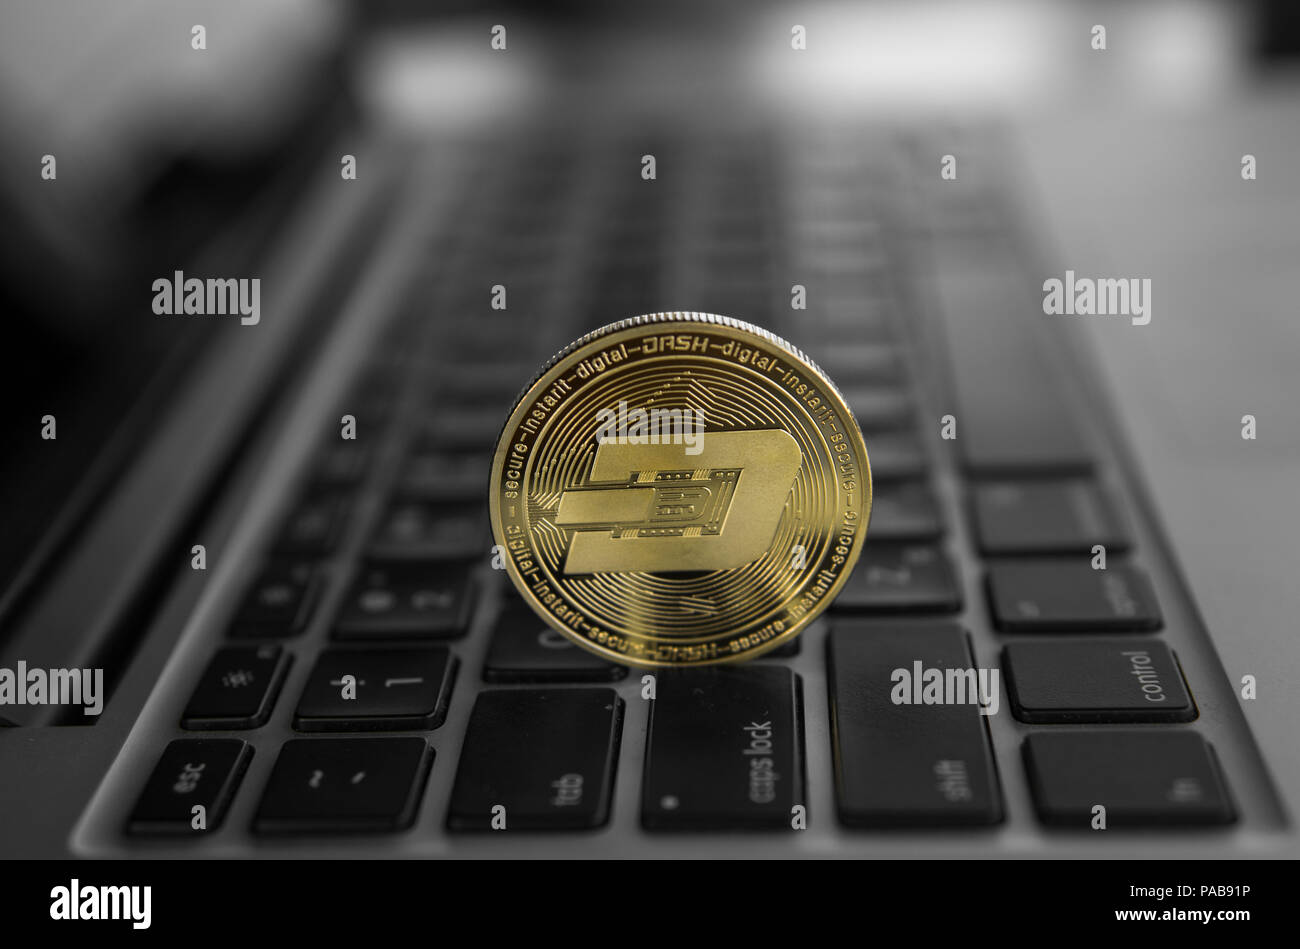 Dash coin symbol on laptop. Concept financial currency, crypto currency sign. Blockchain mining. Digital money and virtual cryptocurrency concept. Bussiness, commercial. - Stock Image